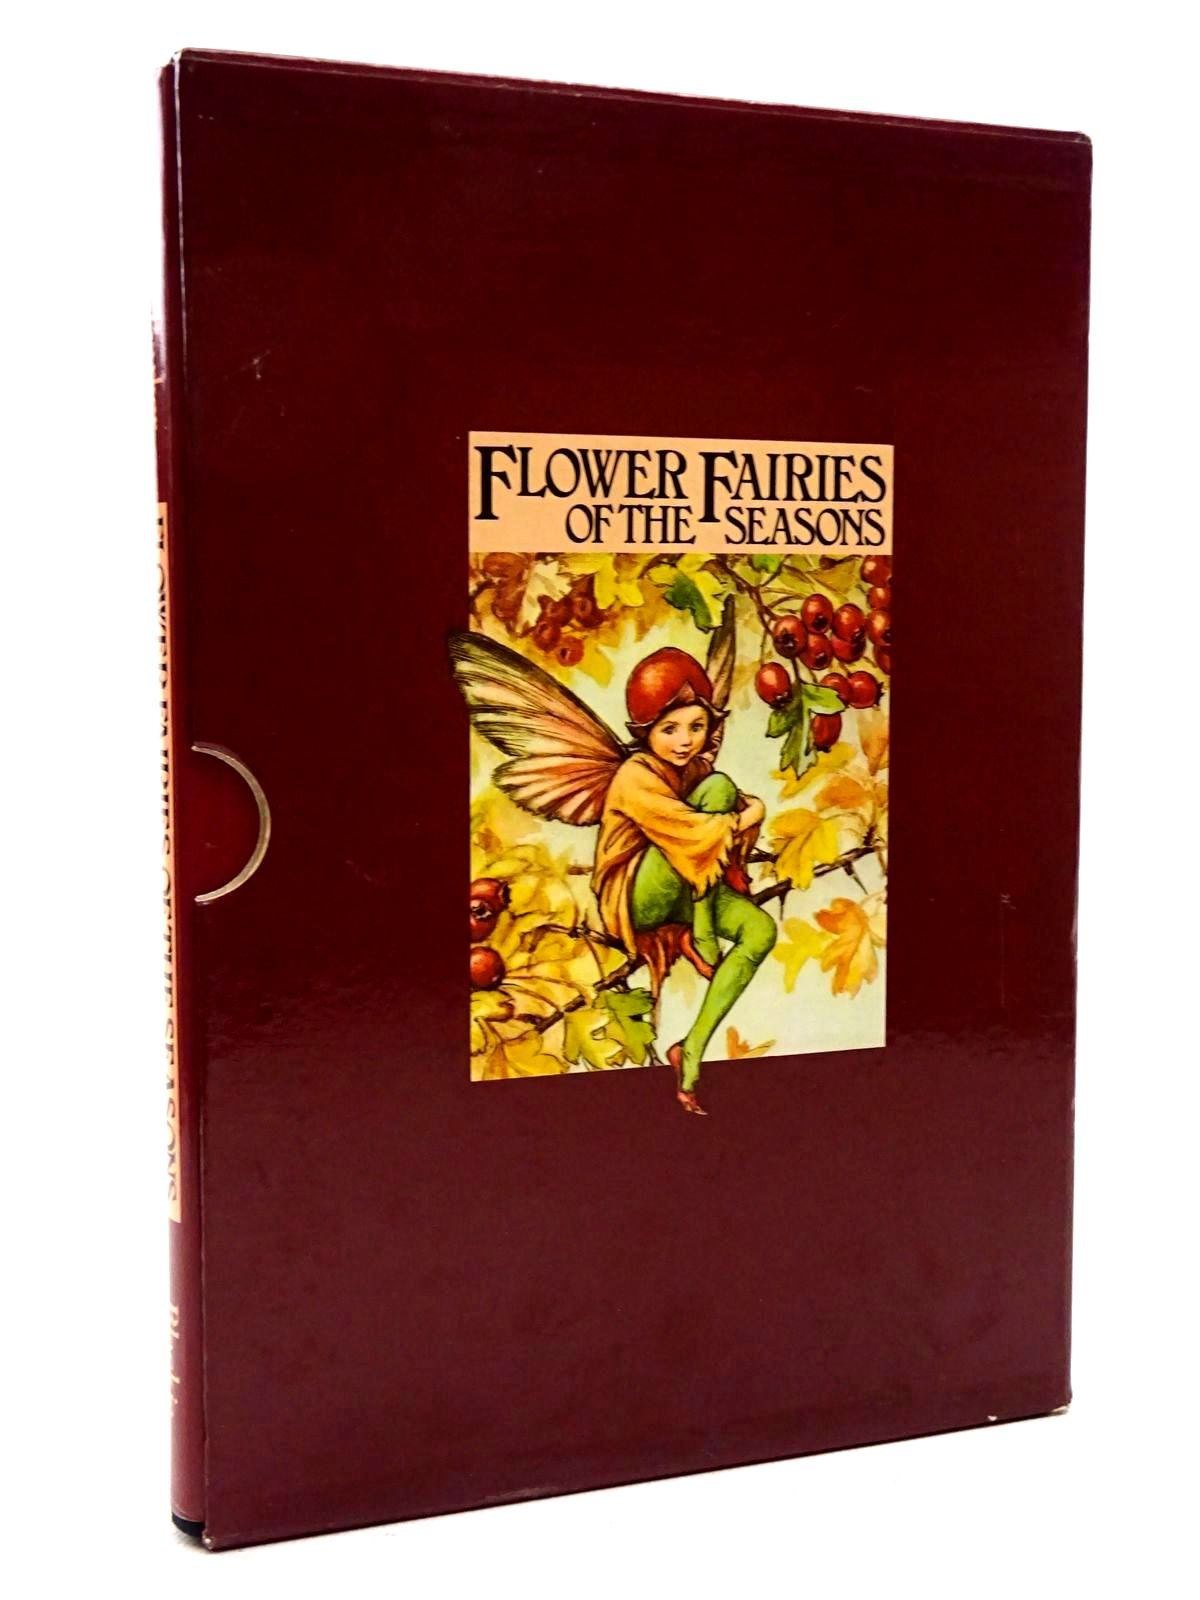 Photo of FLOWER FAIRIES OF THE SEASONS written by Barker, Cicely Mary illustrated by Barker, Cicely Mary published by Blackie & Son Ltd. (STOCK CODE: 2124382)  for sale by Stella & Rose's Books